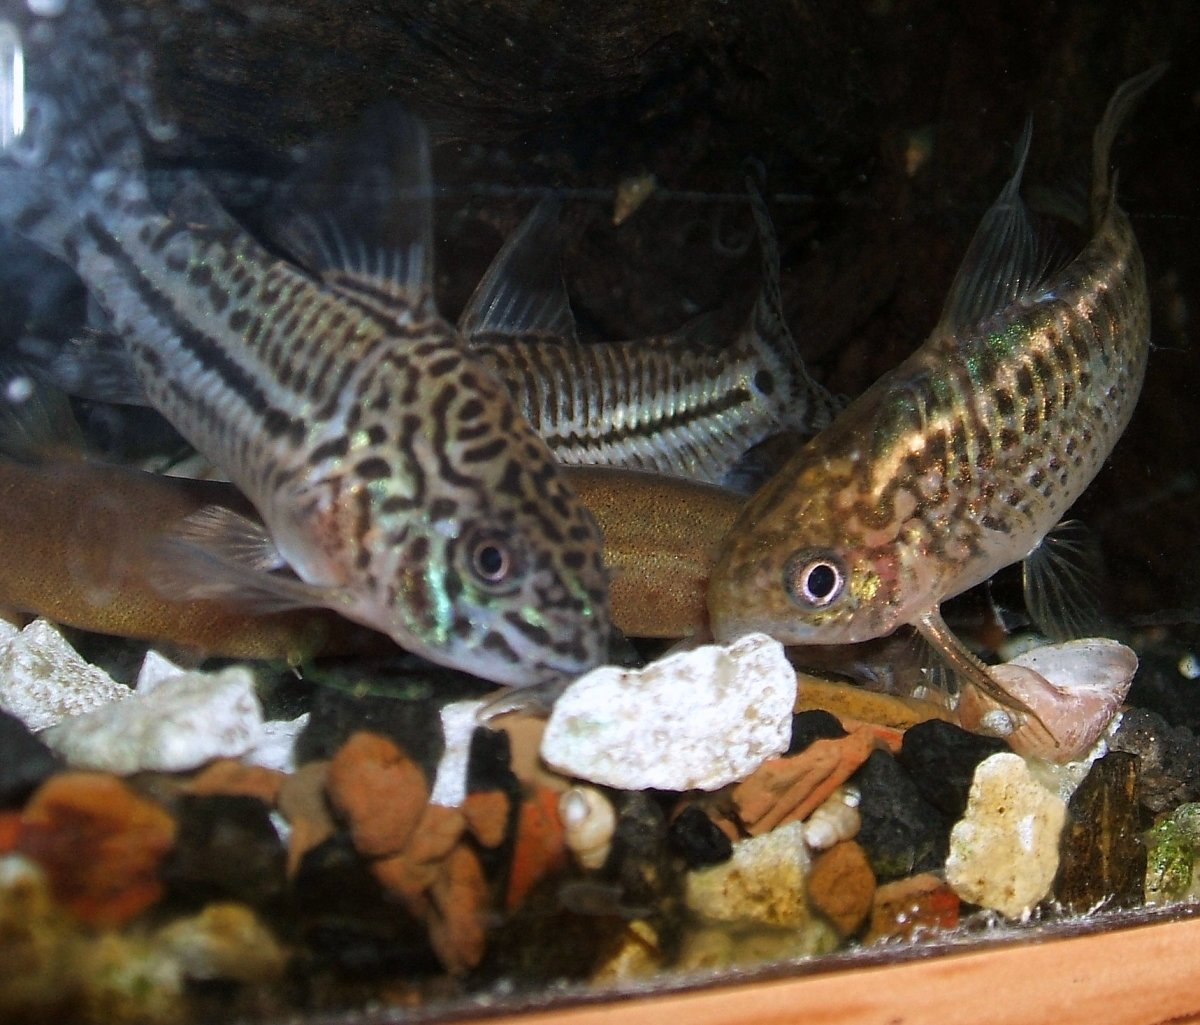 Corydoras trilineatus (left) and Cw008 (right). Copyright I. Ramjohn